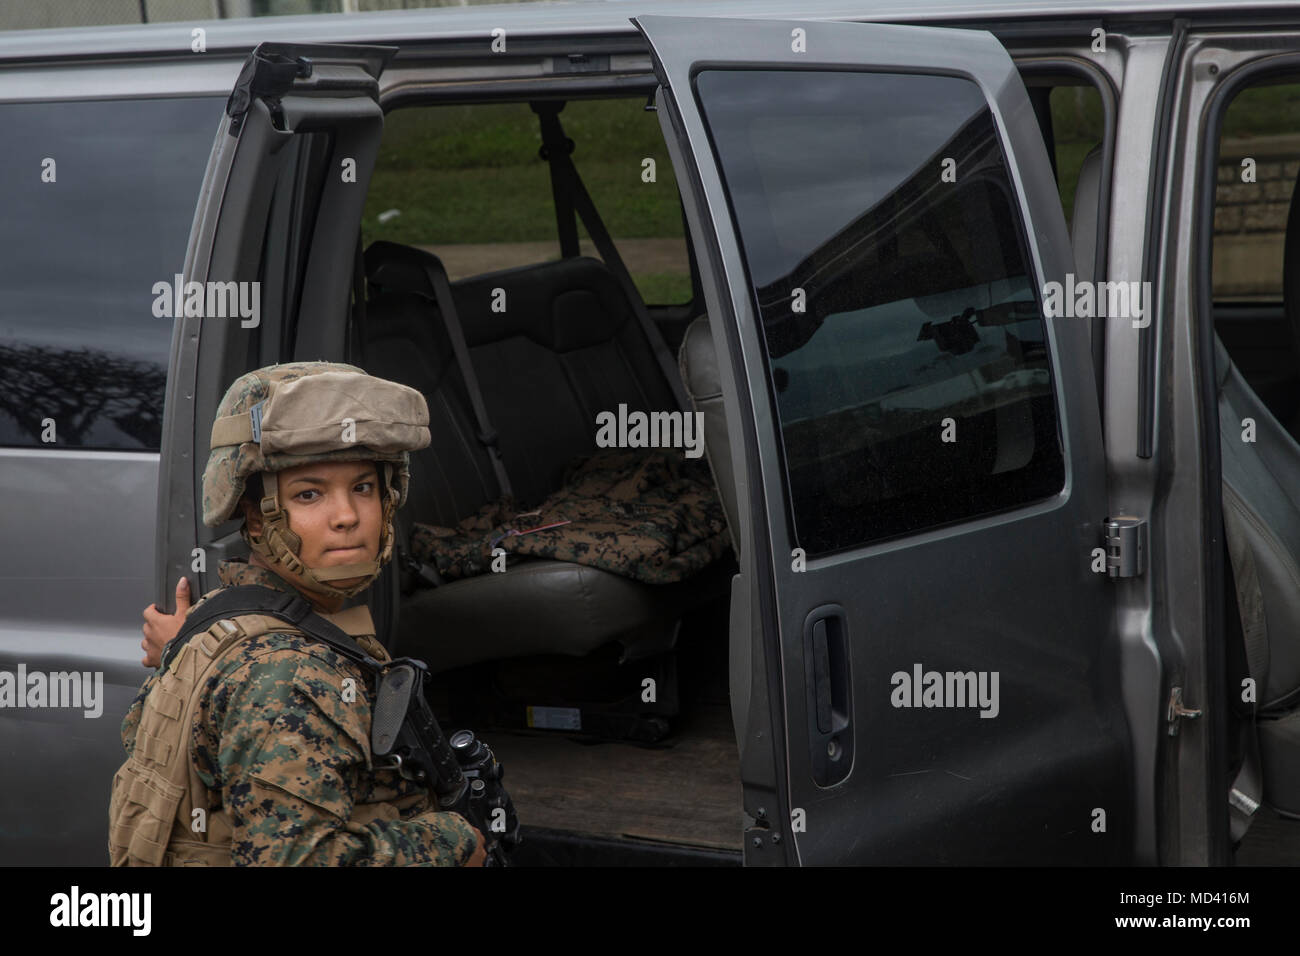 A U.S. Marines with Marine Air Ground Task Group 24 conducts a vehicle inspection for a base defensive exercie aboard Marine Corps Air Station Kaneohe Bay, Mar. 14, 2018. The exercise was conducted to ensure proper measures are taken in the event that a threat arises at the air station. (U.S. Marine Corps photo by Sgt. Alex Kouns) - Stock Image